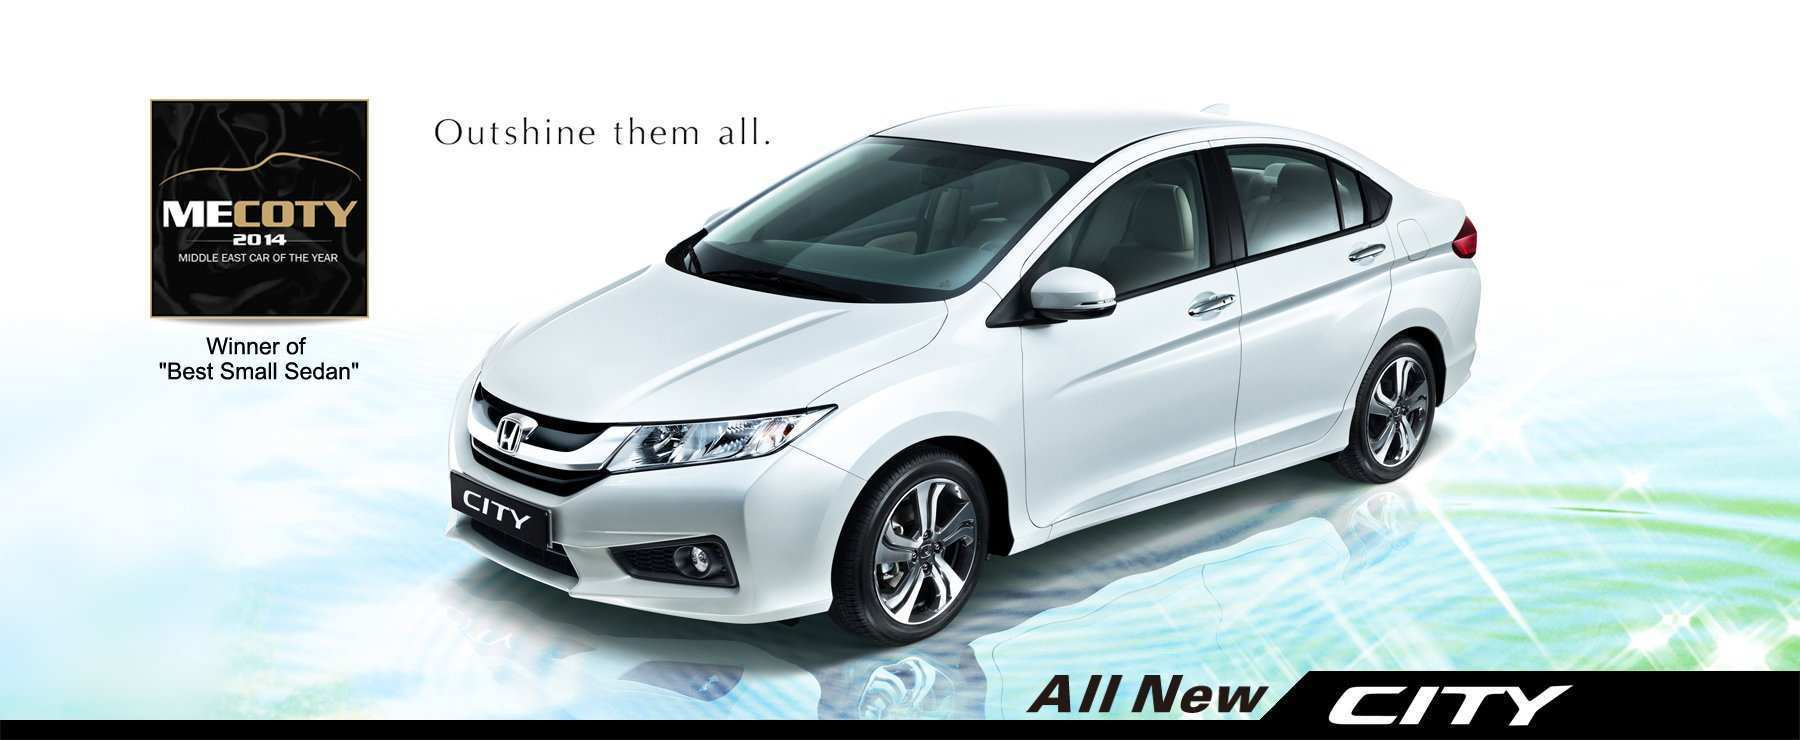 20 Gallery of Honda City 2019 Qatar Price New Concept with Honda City 2019 Qatar Price